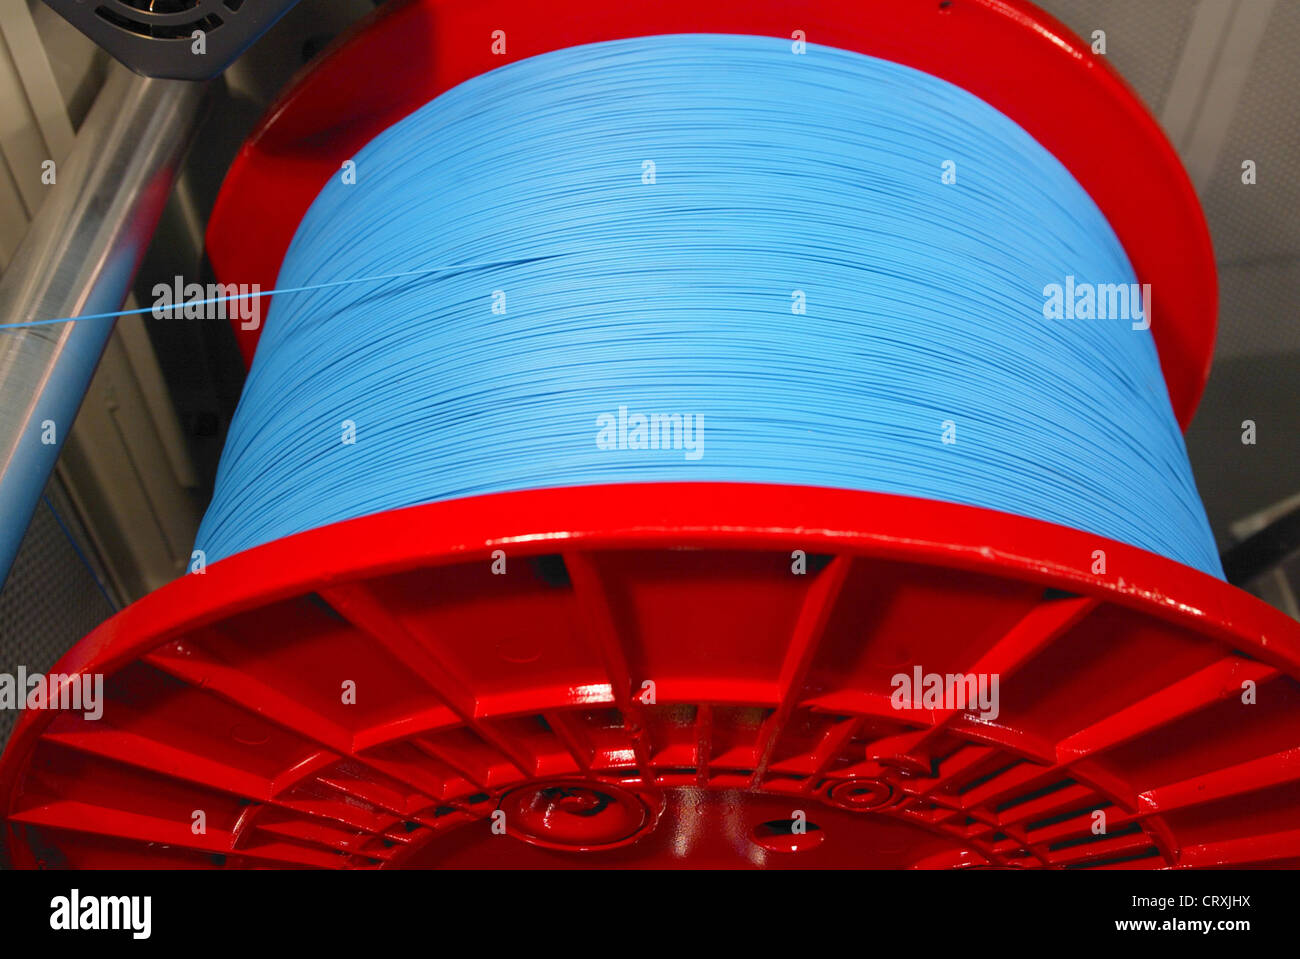 Wire Production Stock Photos & Wire Production Stock Images - Alamy